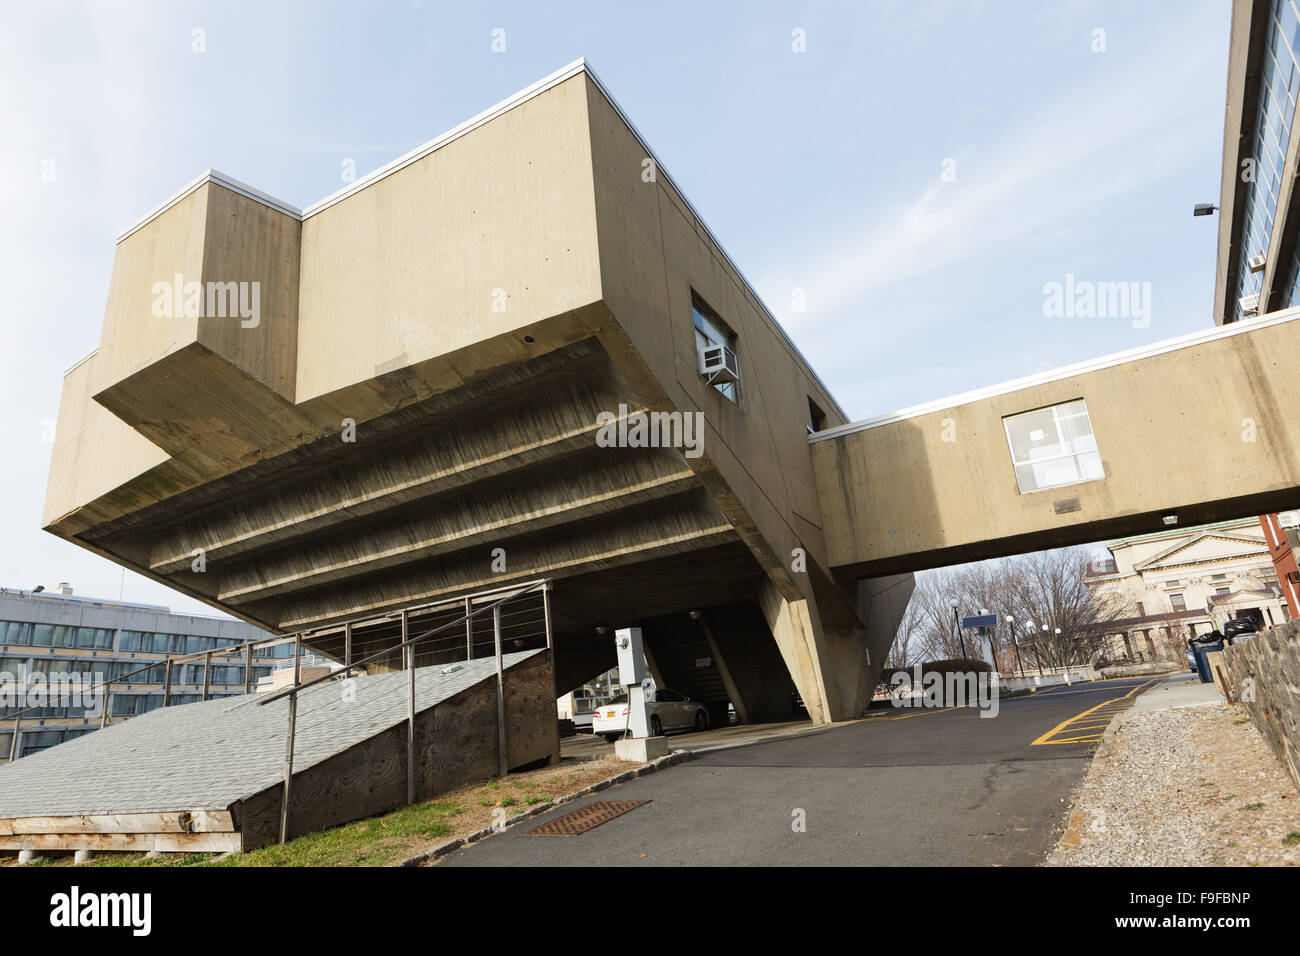 Begrisch Hall, 1956-61, by Marcel Breuer, Bronx Community College, CUNY, New York, USA. - Stock Image